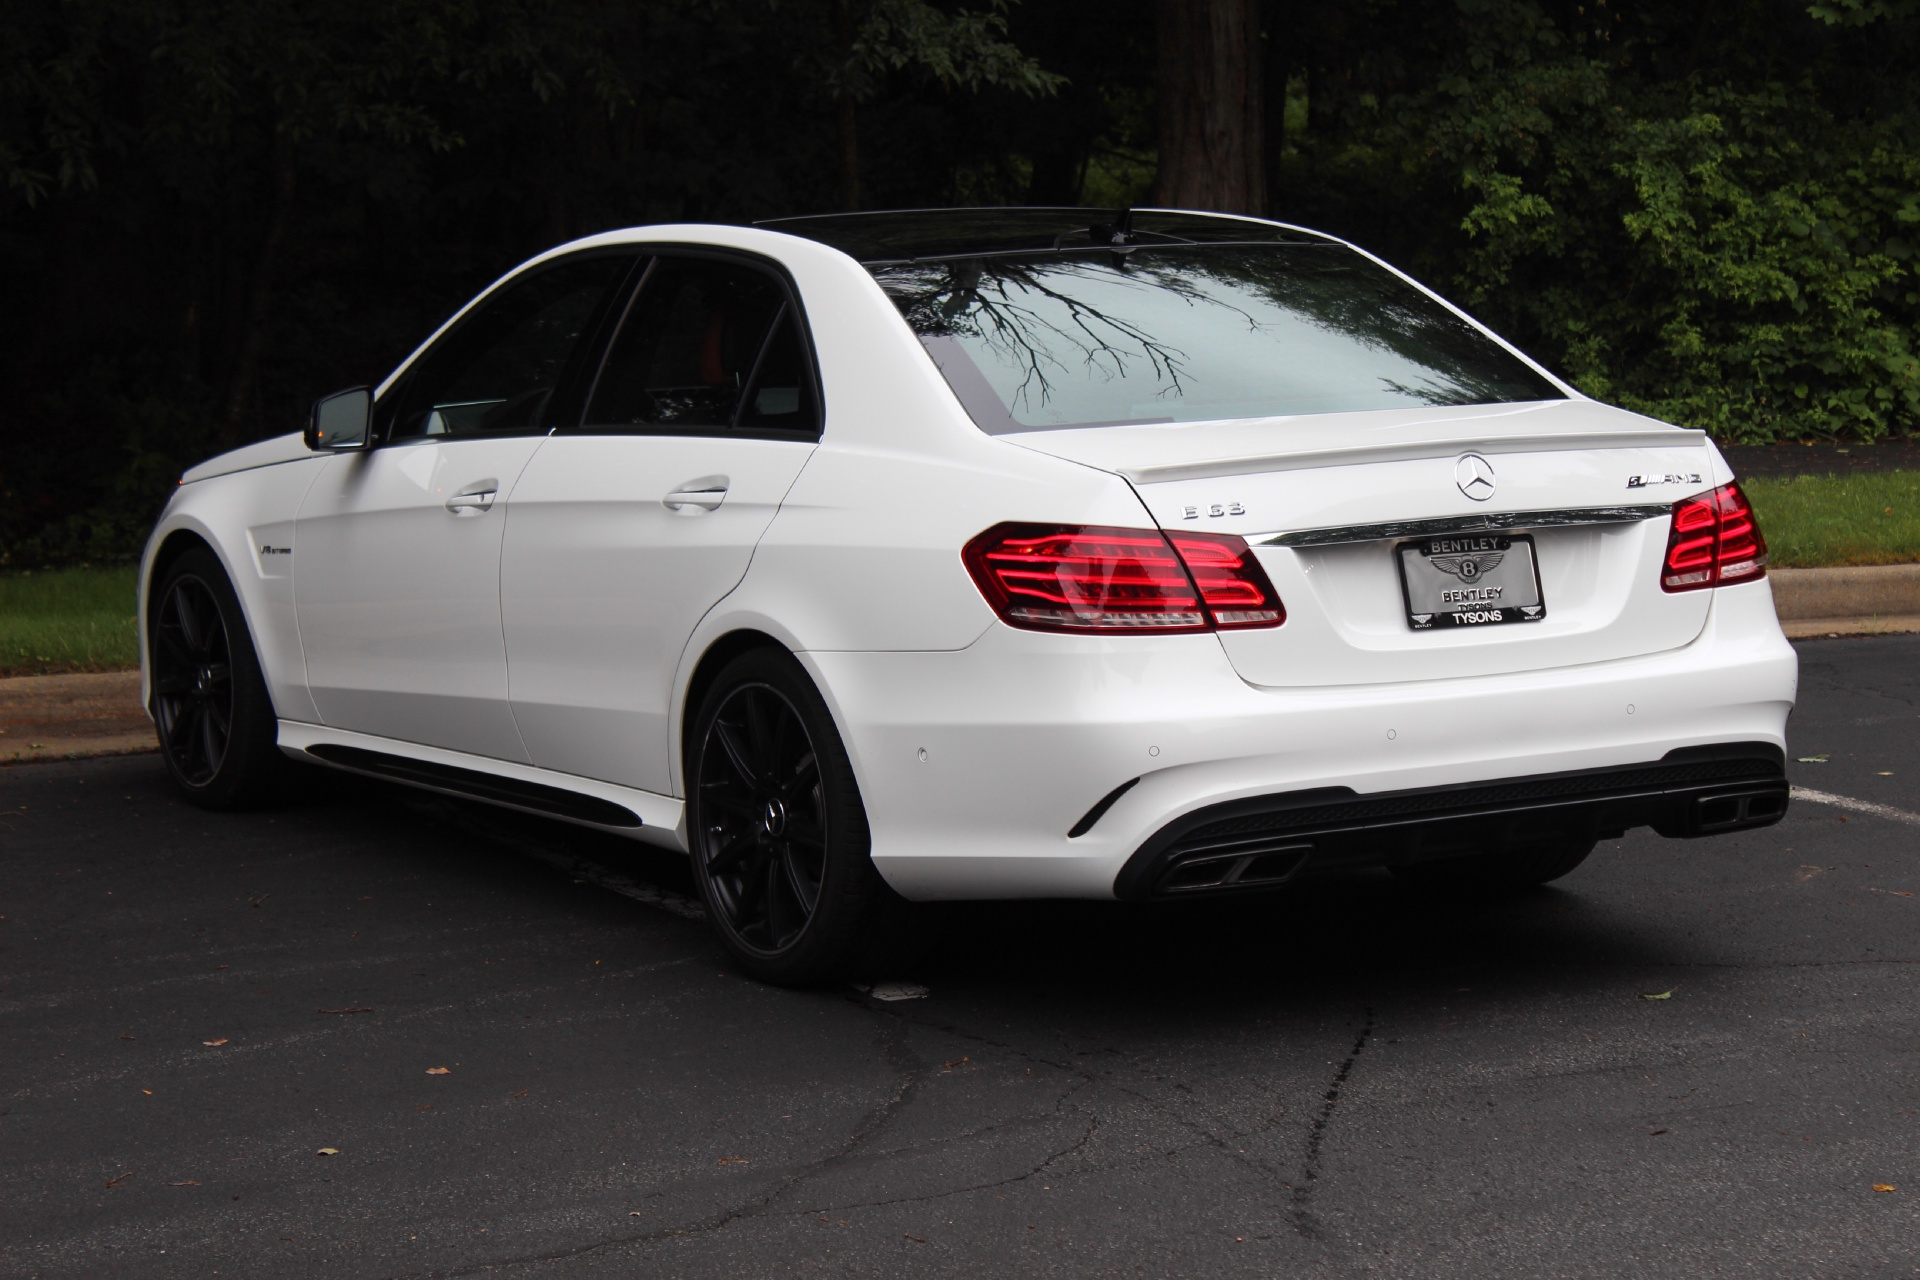 2014 Mercedes Benz E Class E63 Amg S Model Stock P002503 For Sale